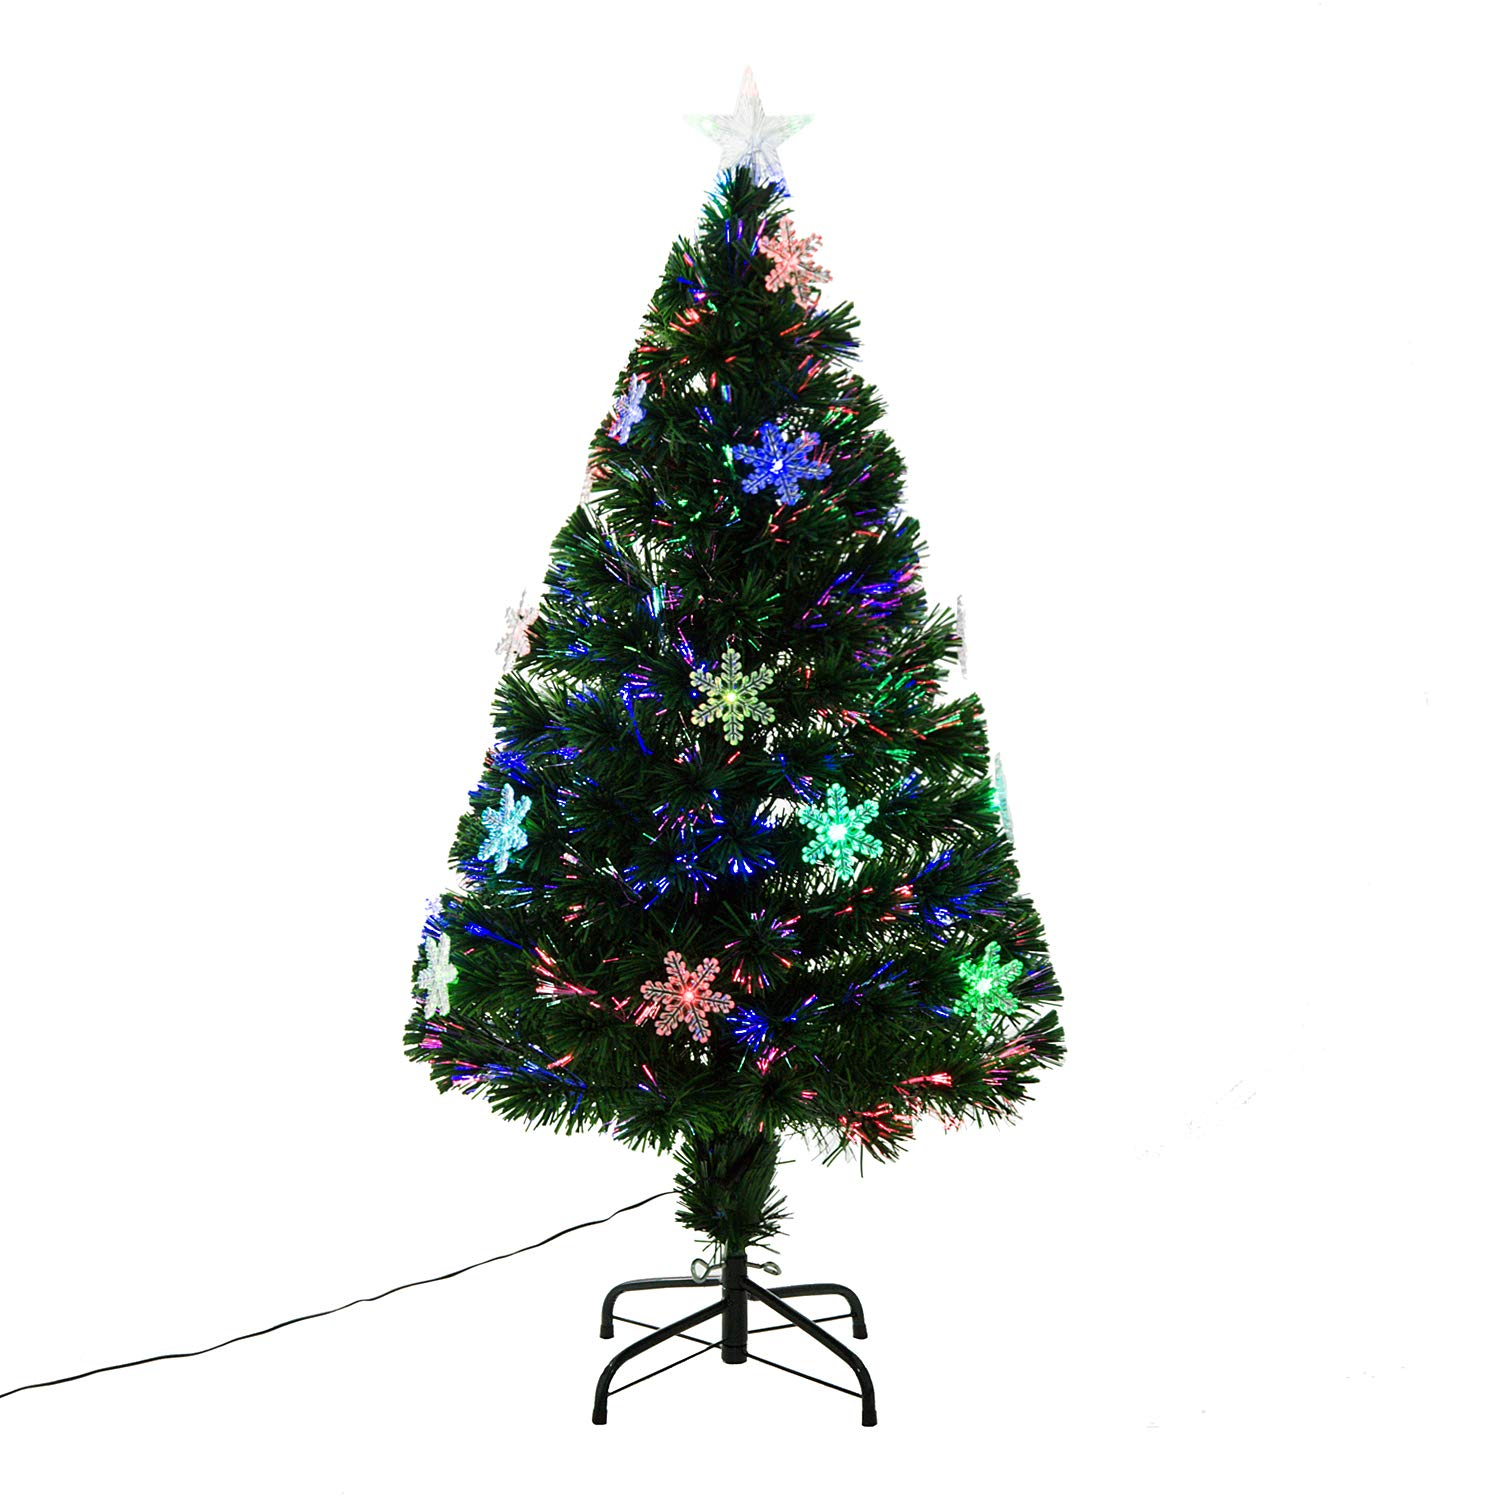 HOMCOM 3ft 4ft 5ft Green Fibre Optic Artificial Christmas Tree Xmas Colourful LED Scattered Light Tree with Snowflakes Ornaments Fireproofing (3ft (90cm)) Sold by MHSTAR